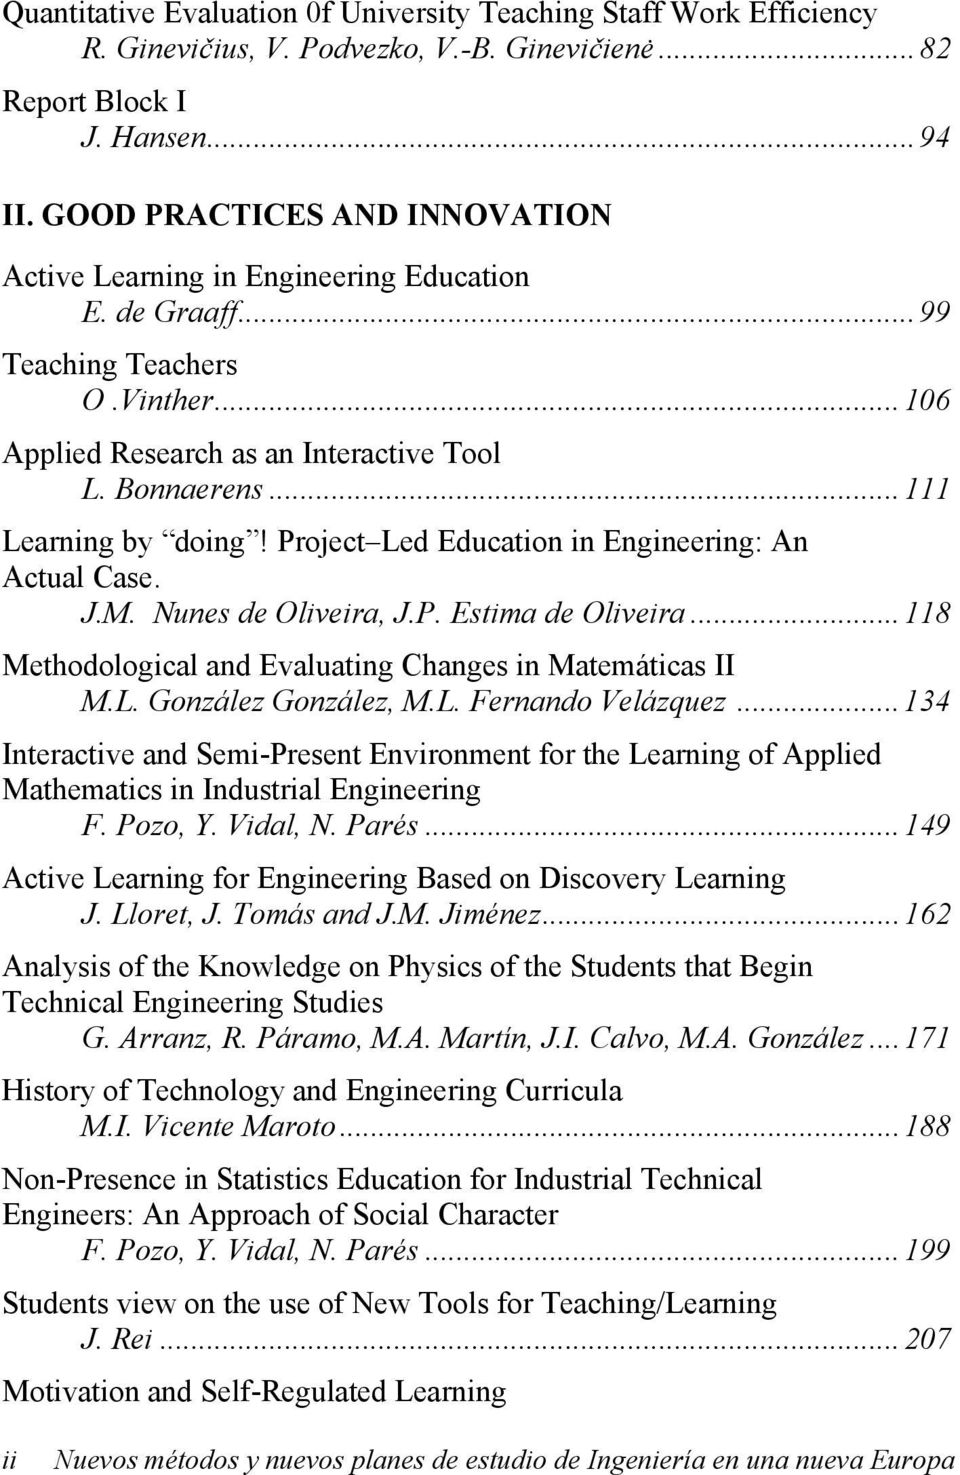 Project Led Education in Engineering: An Actual Case. J.M. Nunes de Oliveira, J.P. Estima de Oliveira...118 Methodological and Evaluating Changes in Matemáticas II M.L. González González, M.L. Fernando Velázquez.